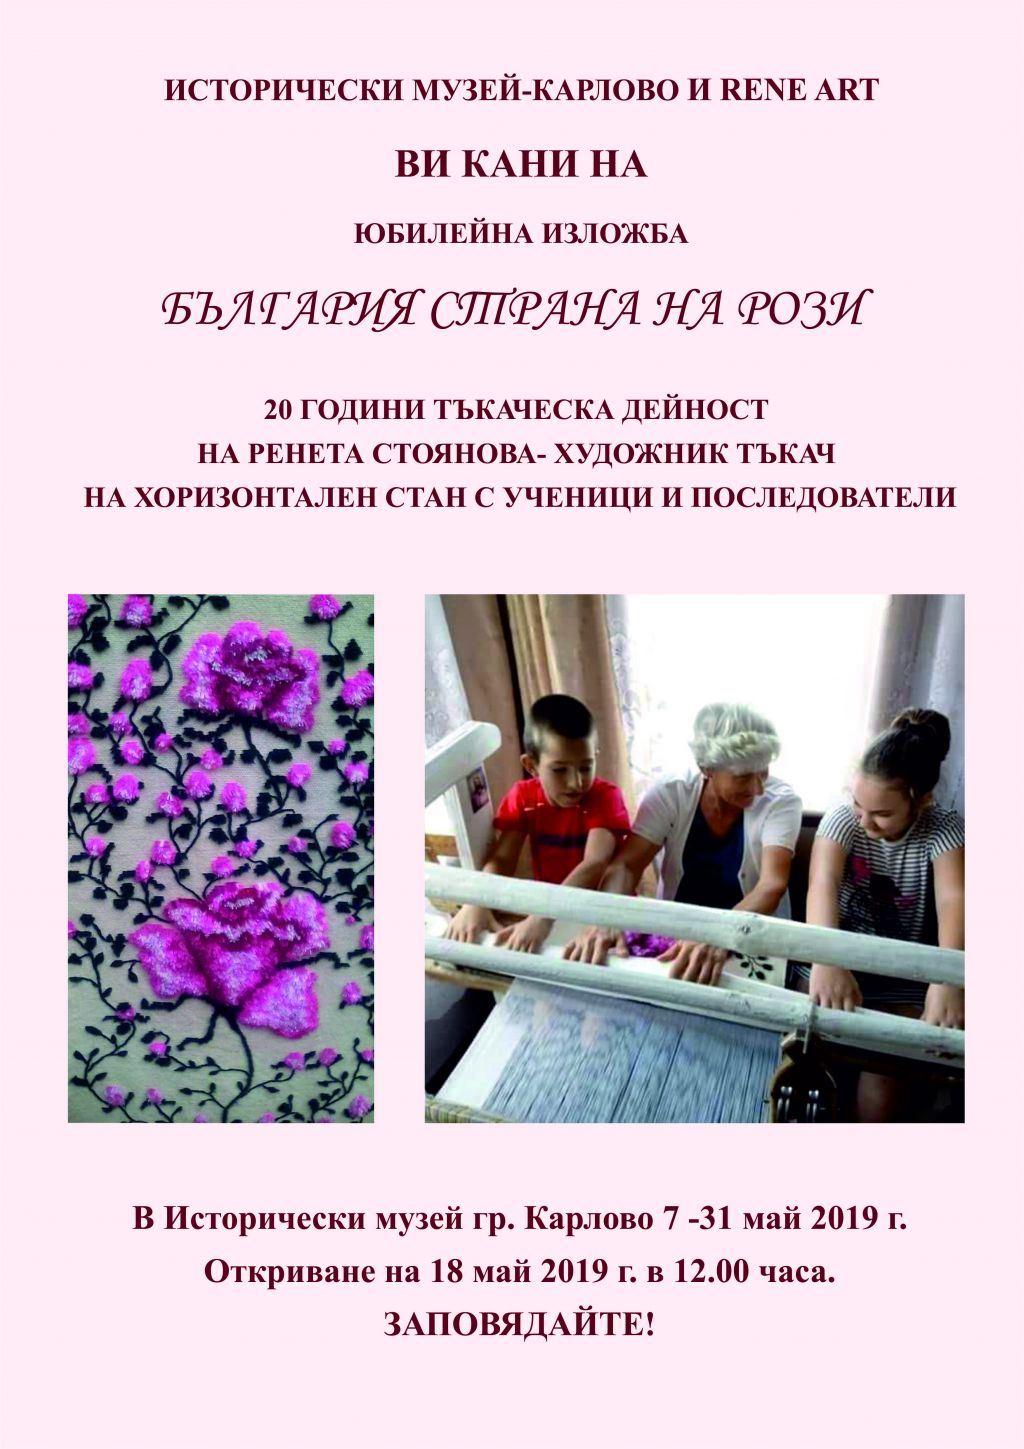 Jubilee exhibition Bulgaria side of roses - big image